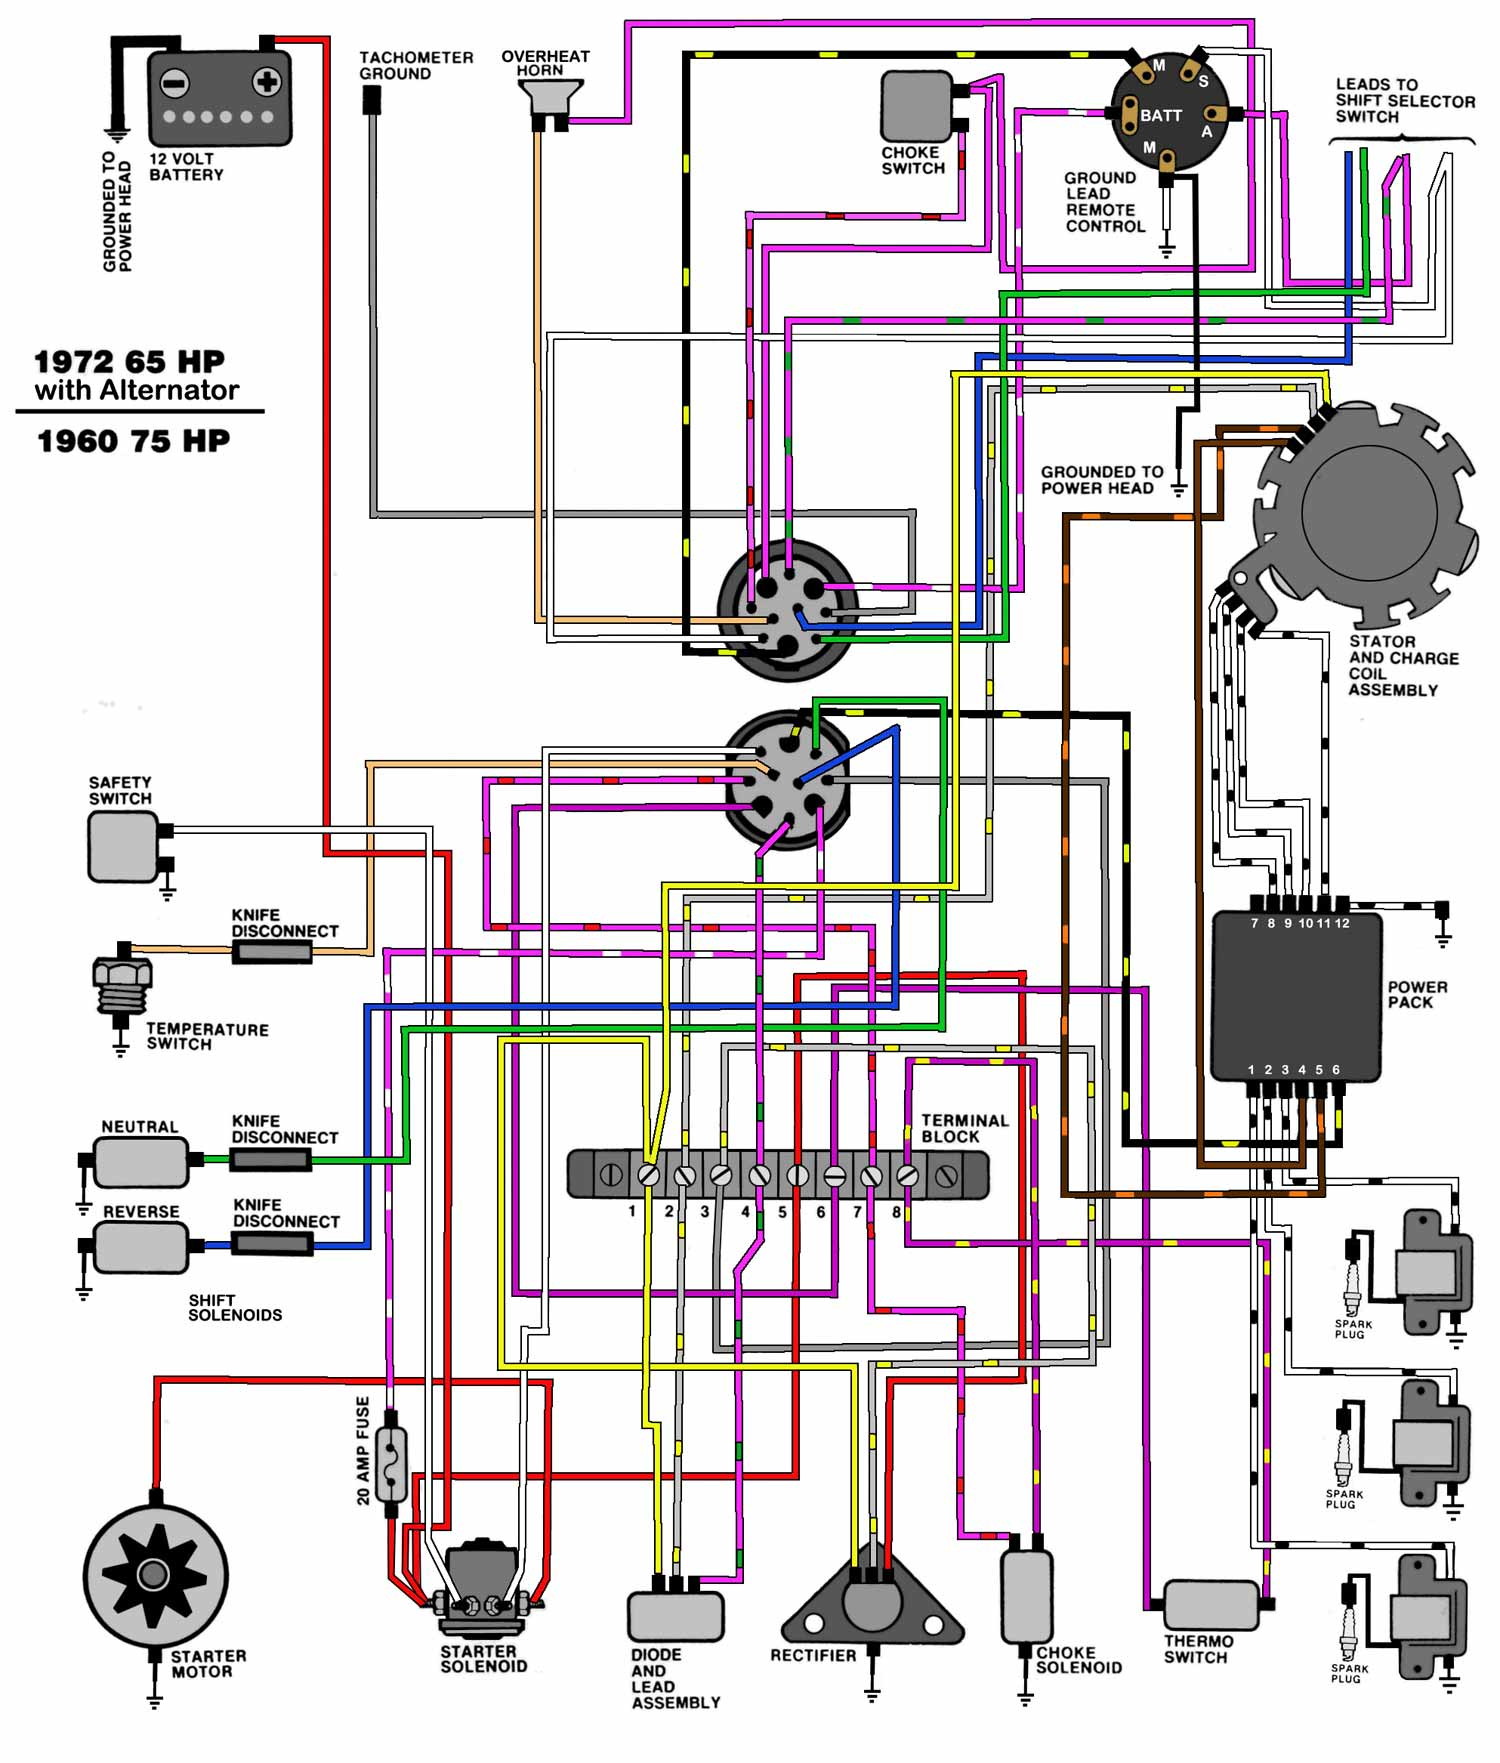 1998 Chrysler Fuse Box Diagram Wiring Will Be A Thing 2005 Sebring Evinrude Johnson Outboard Diagrams Mastertech 2004